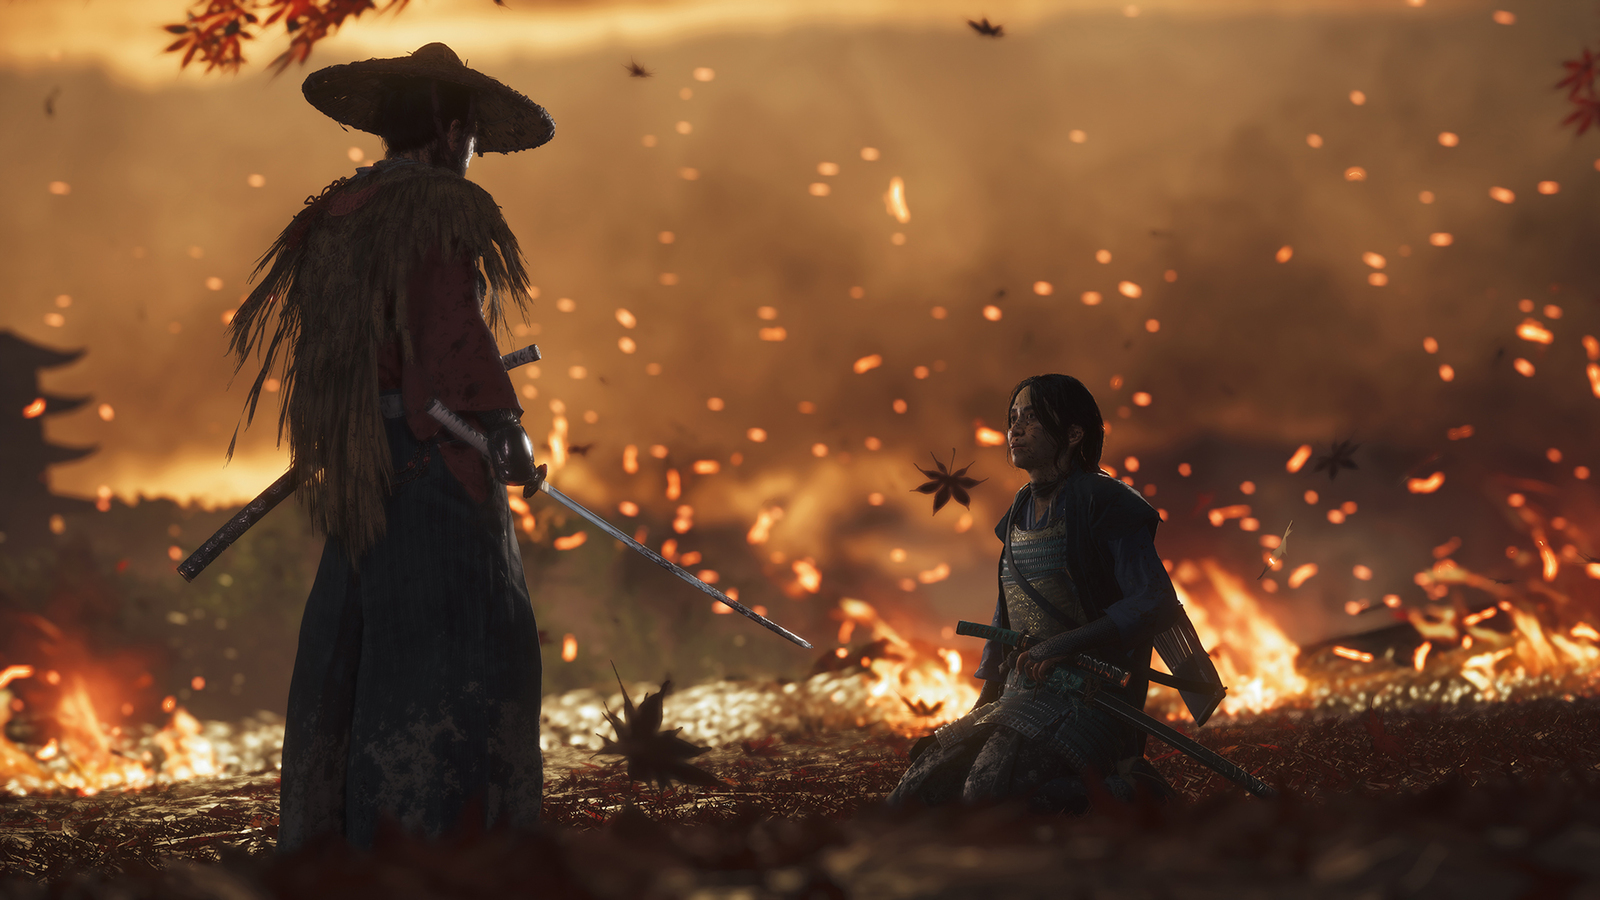 Ghost of Tsushima for PS4 image